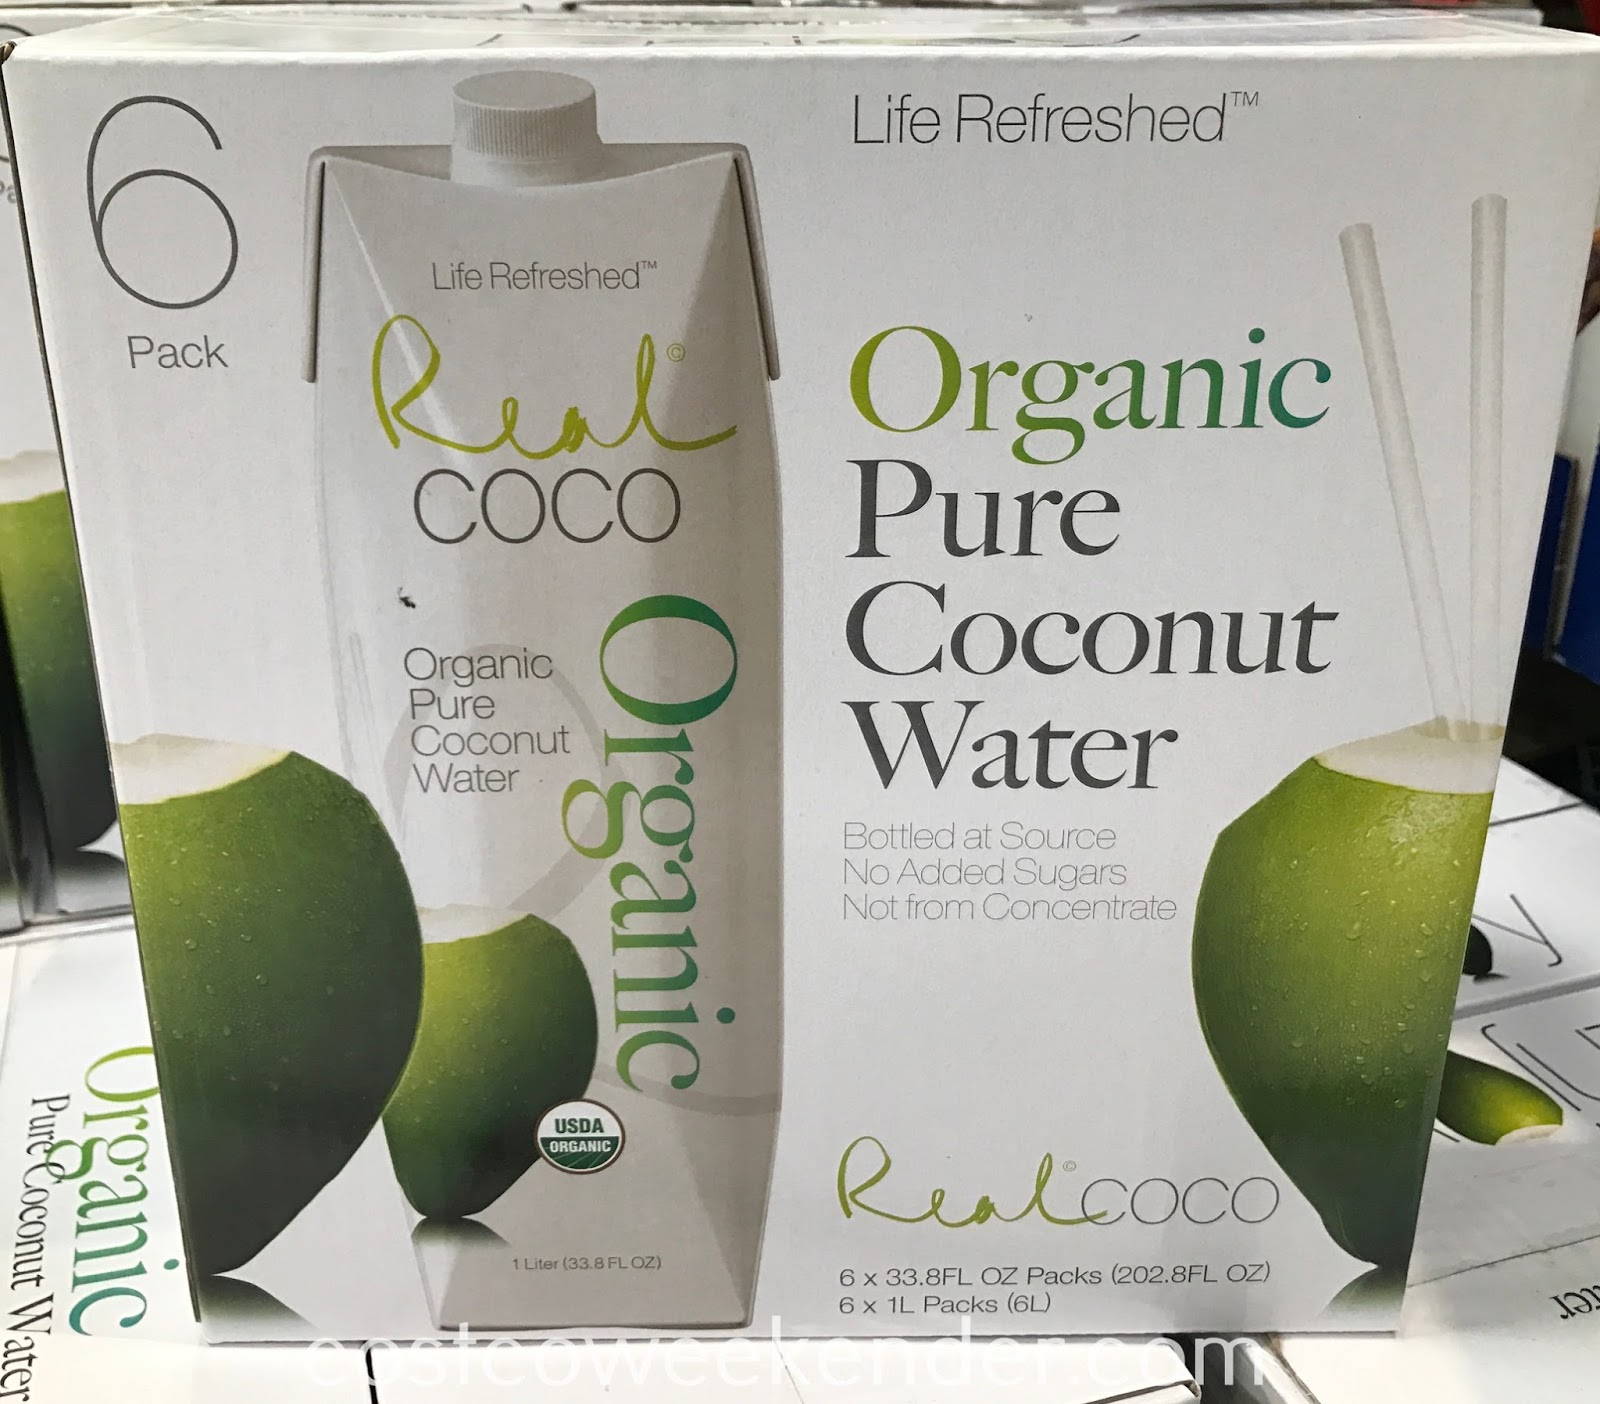 Quench your thirst with Real Coco Organic Pure Coconut Water